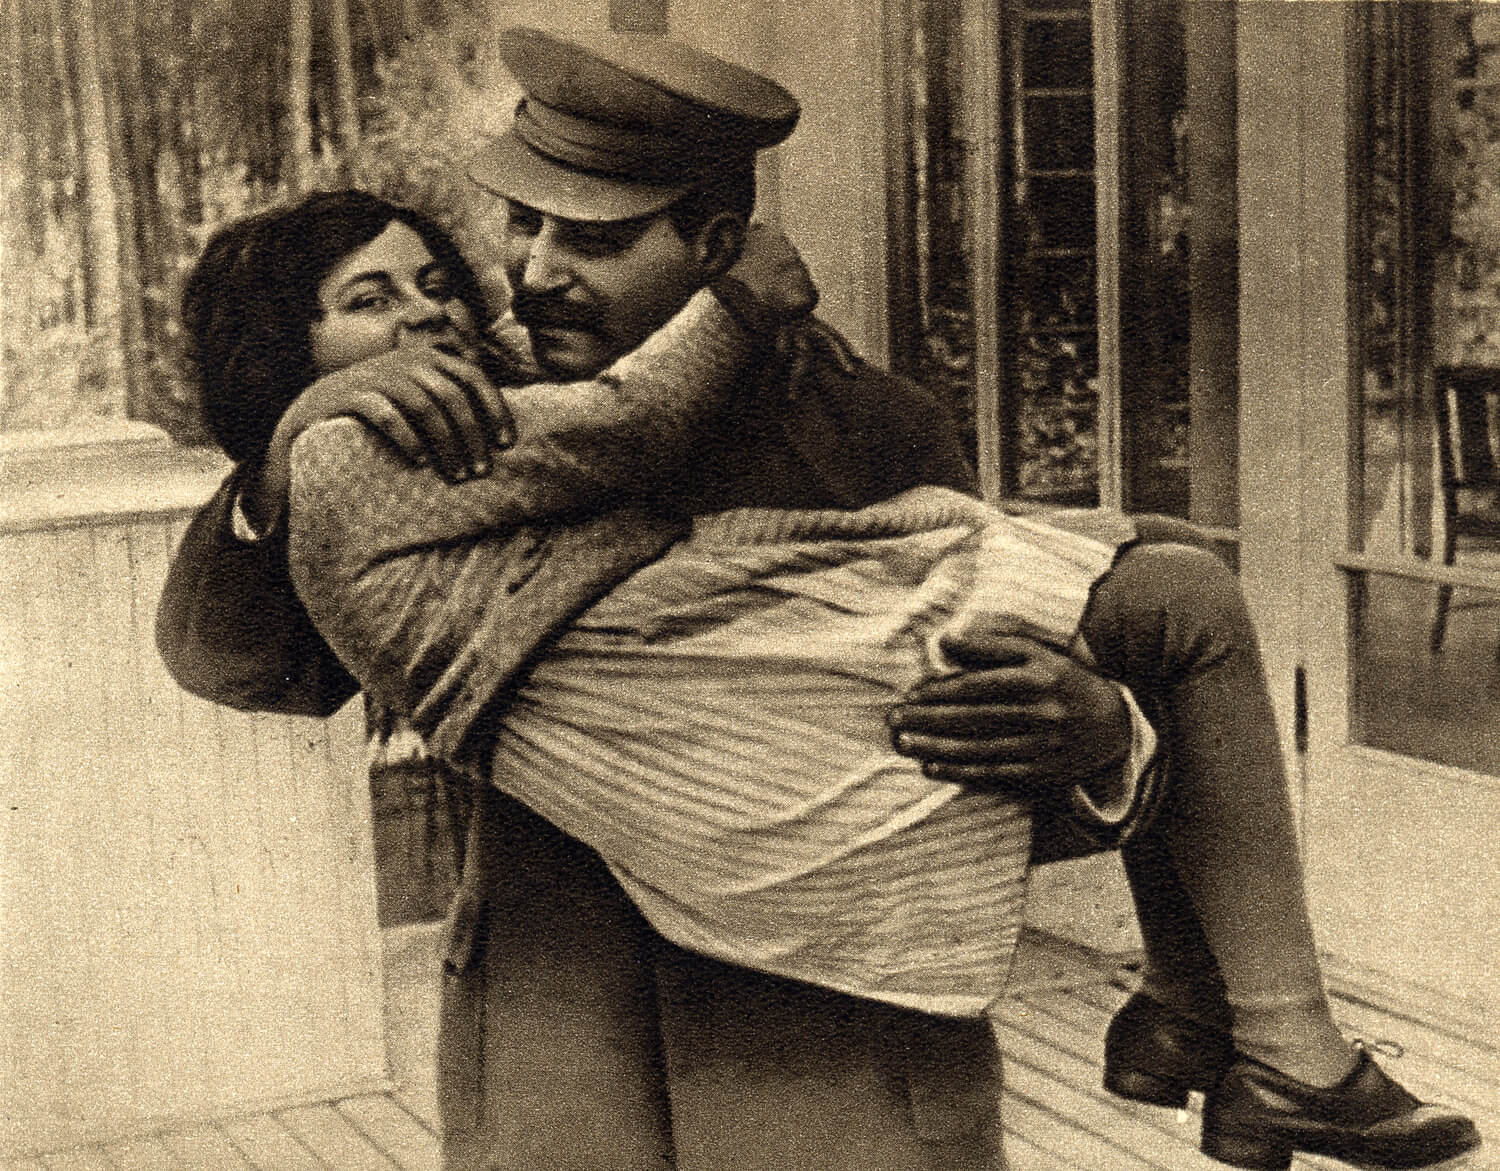 Joseph Stalin with his daughter, Svetlana Alliluyeva